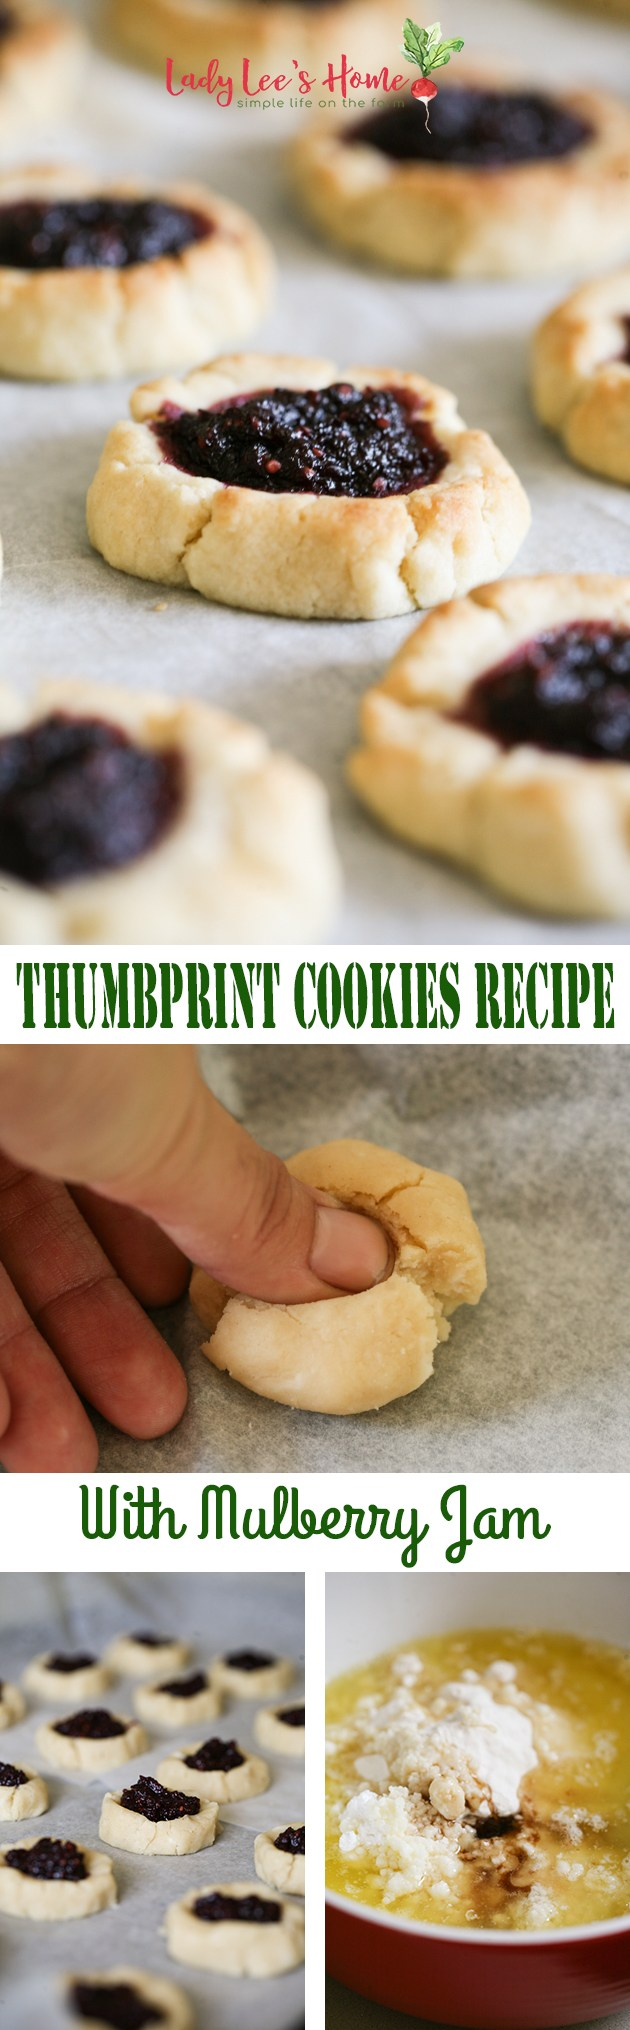 Deliciously sweet thumbprint cookies recipe with homemade mulberry jam! Use this dough to make simple sugar cookies or fill it with the jam of your choice.